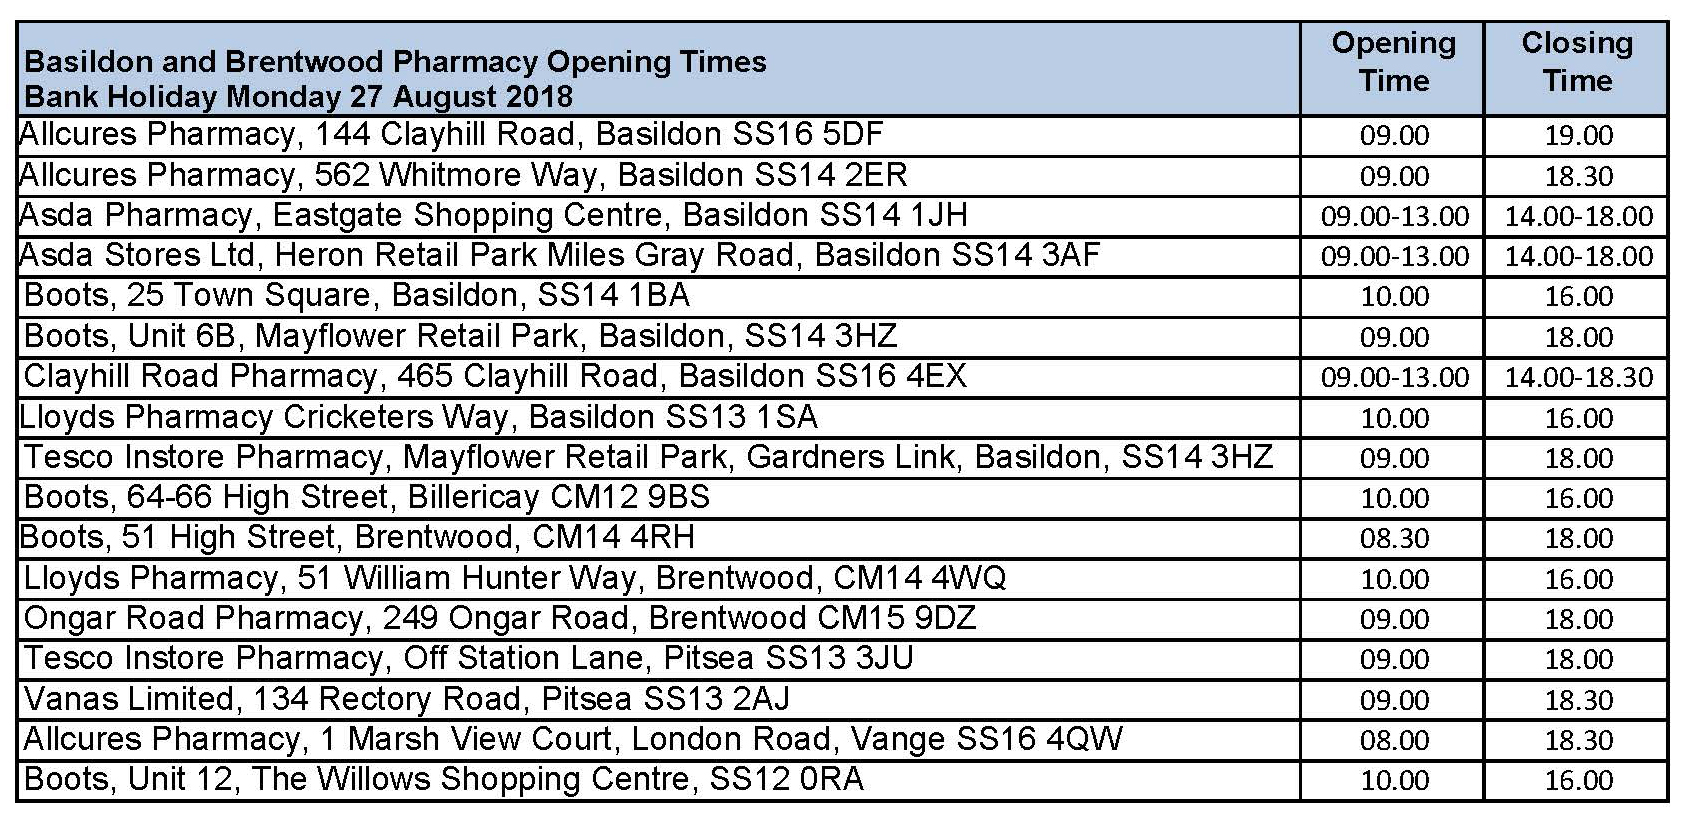 Pharmacy Opening Times Basildon and Brentwood Page 1 crop for website